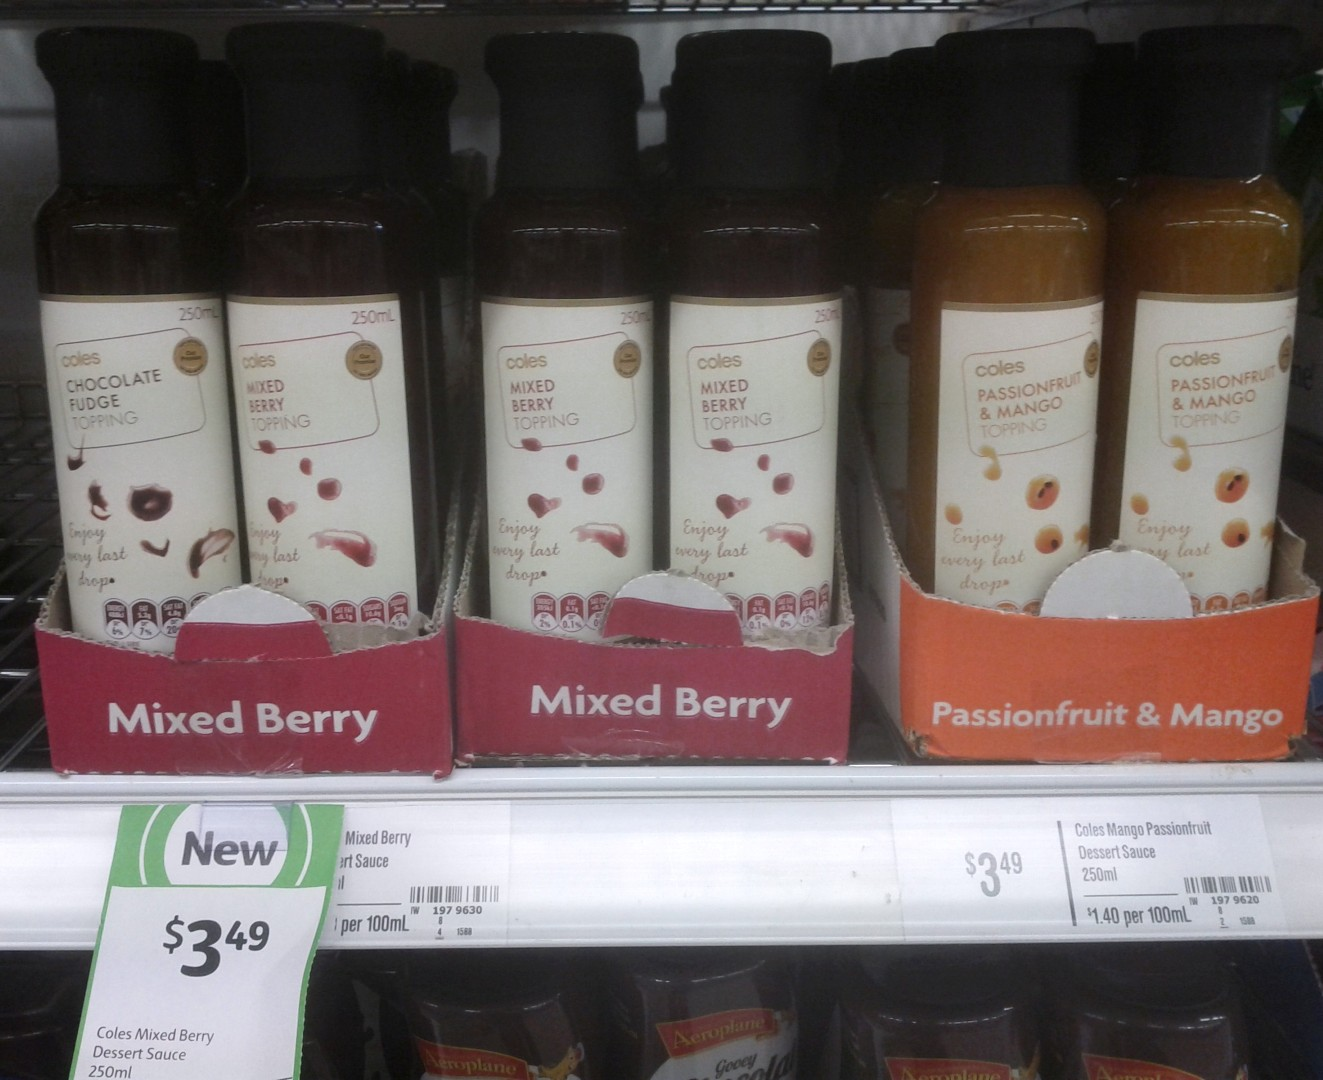 Coles 250mL Topping Chocolate Fudge, Mixed Berry, Passionfruit & Mango